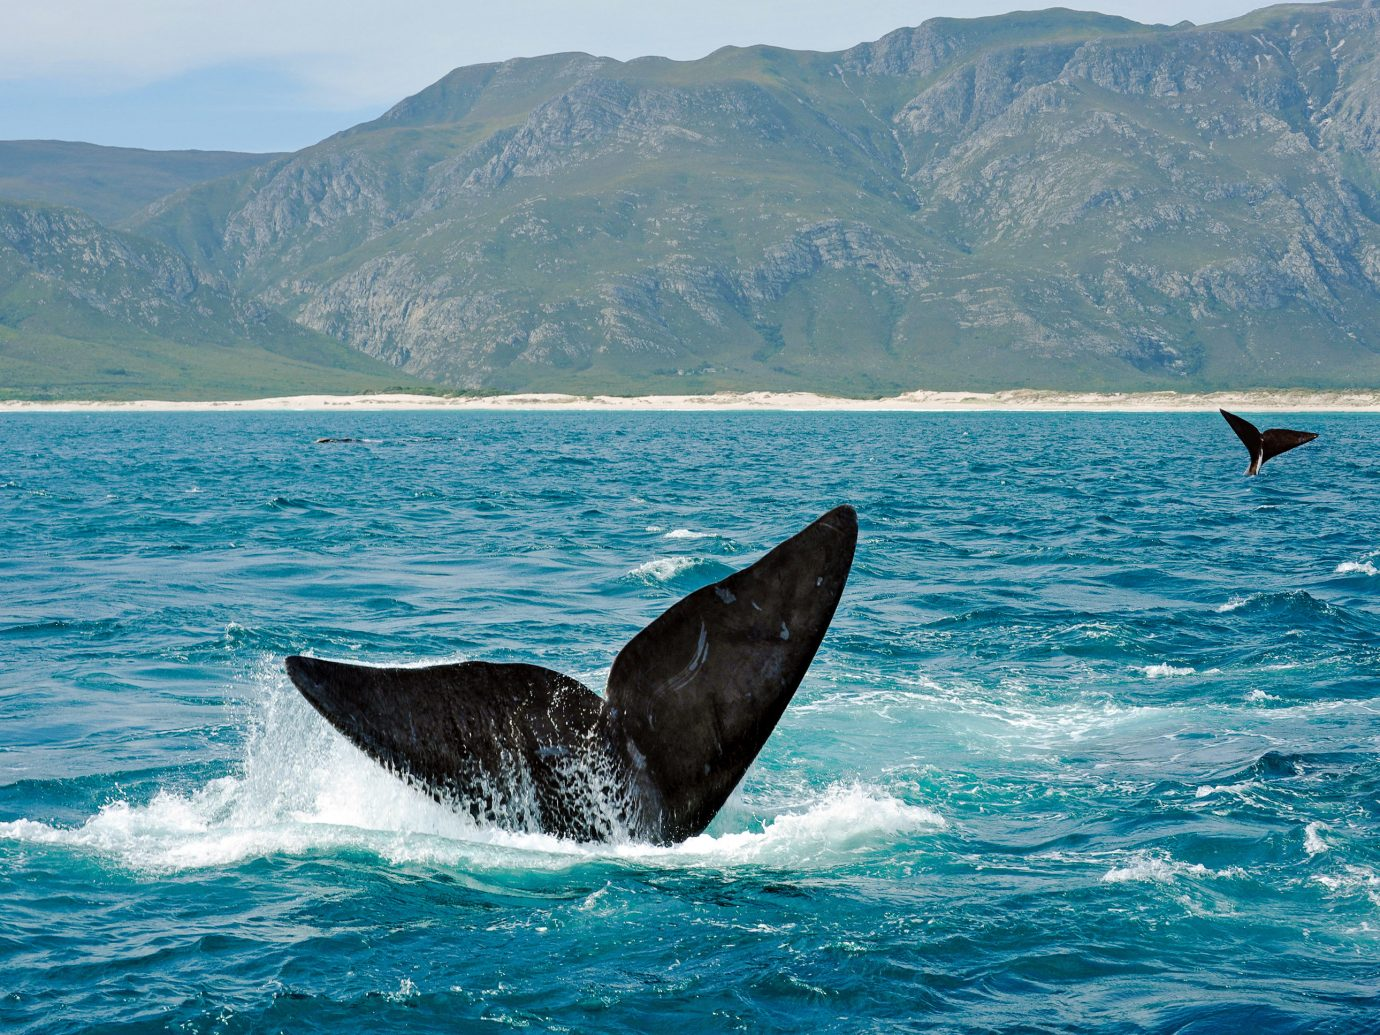 Hermanus mammal water marine mammal whales dolphins and porpoises whale Sea Ocean Wildlife wind wave wave coastal and oceanic landforms humpback whale sky